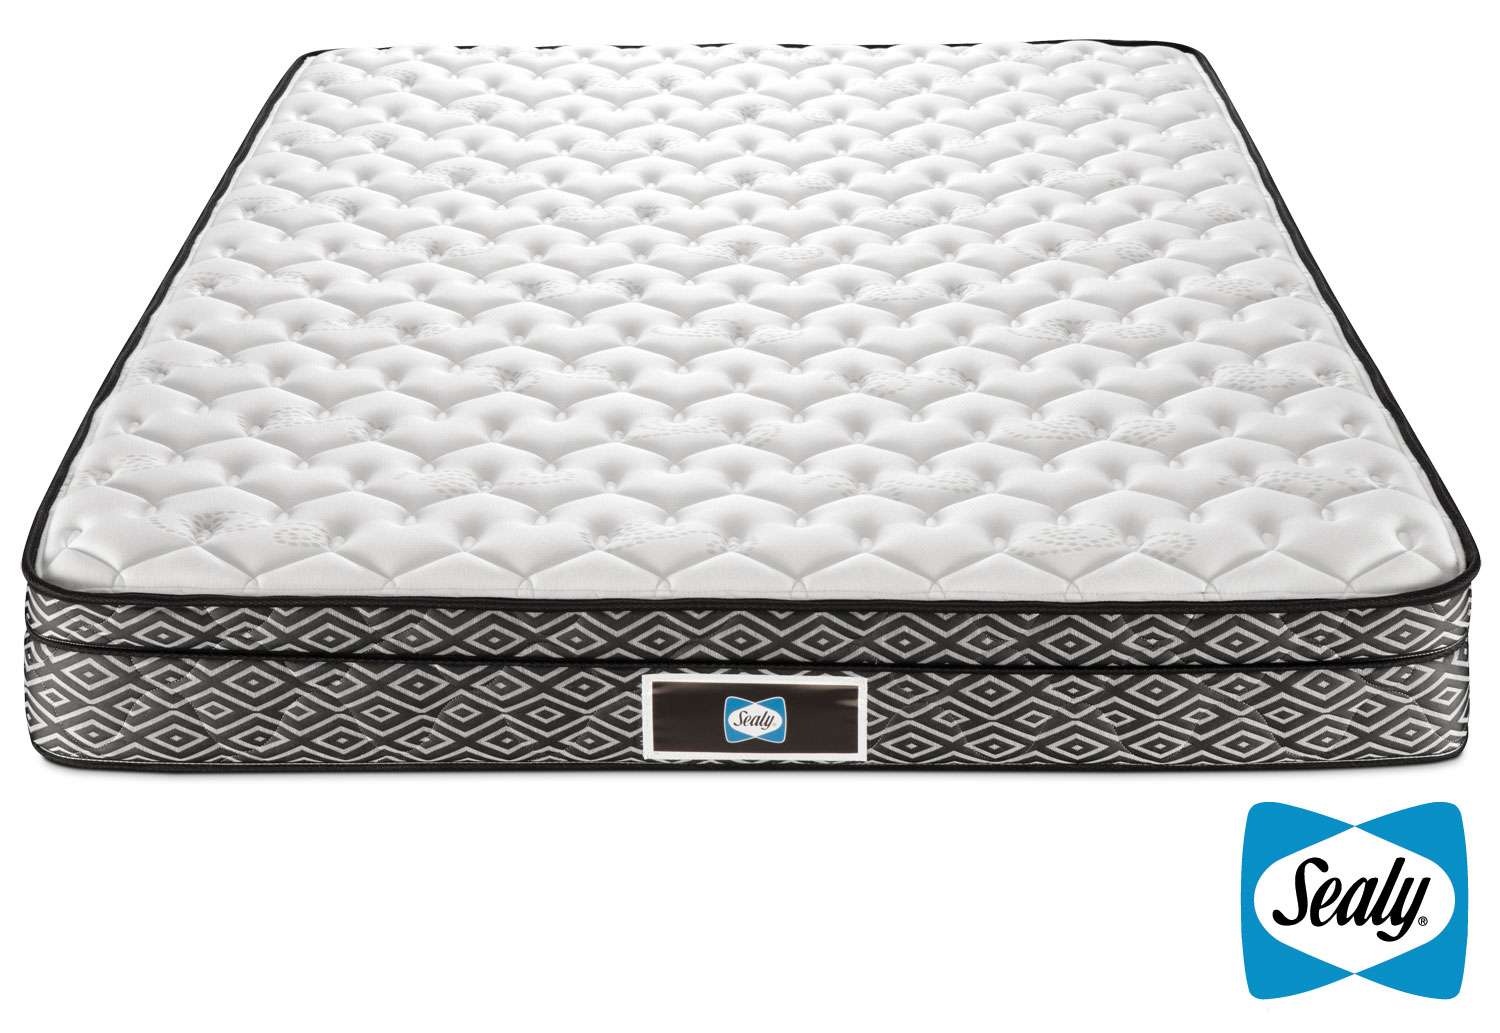 Mattresses and Bedding - Sealy Tale Twin Mattress